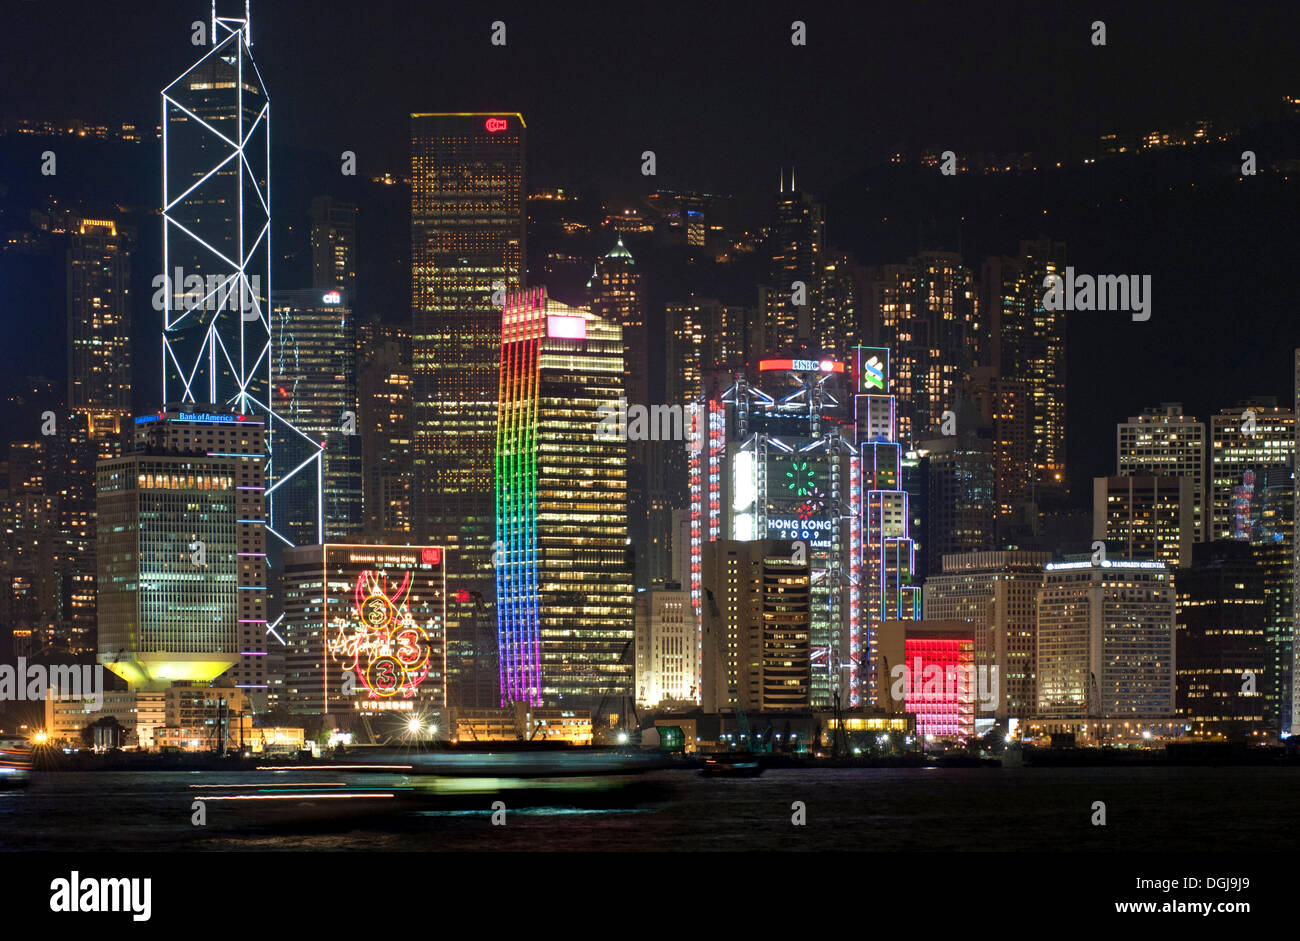 Laser light show on the skyscrapers of the Central District of Hong Kong Island as seen from Kowloon, Hong Kong, China, Asia - Stock Image